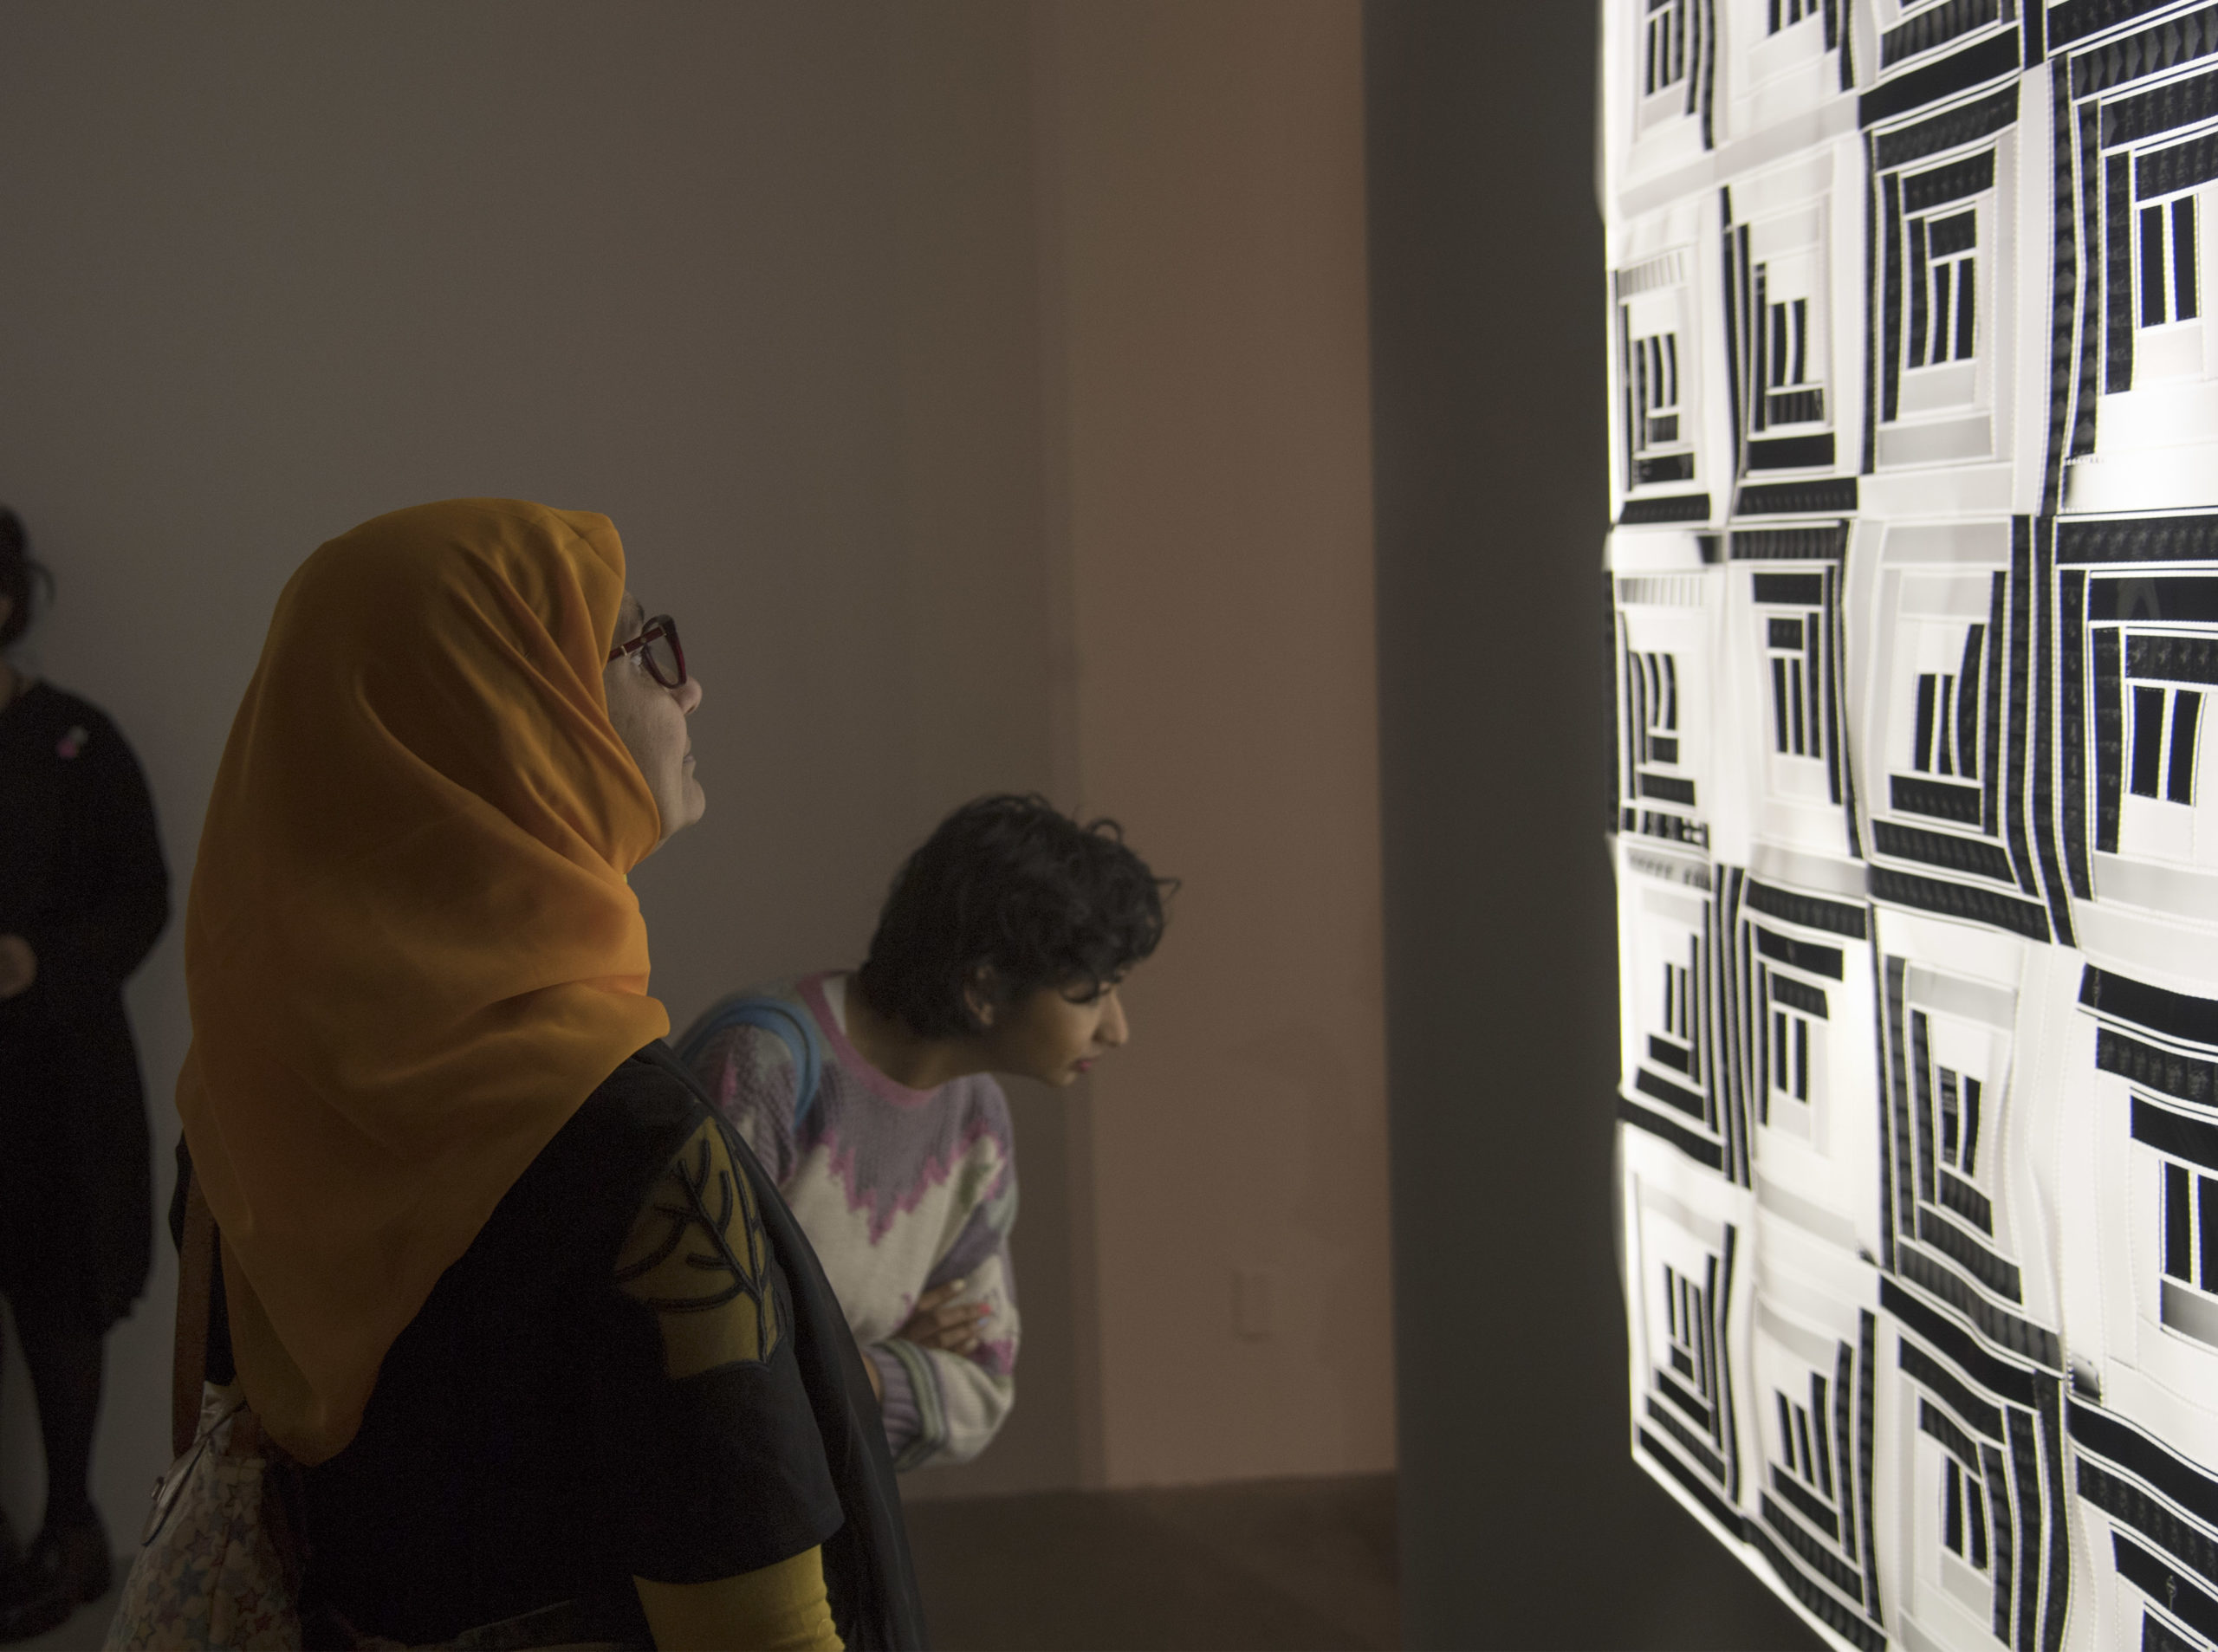 Two visitors are looking at a black and white sculptural work by the artist Sabrina Gschwandtner in the exhibition, COLA 2019.